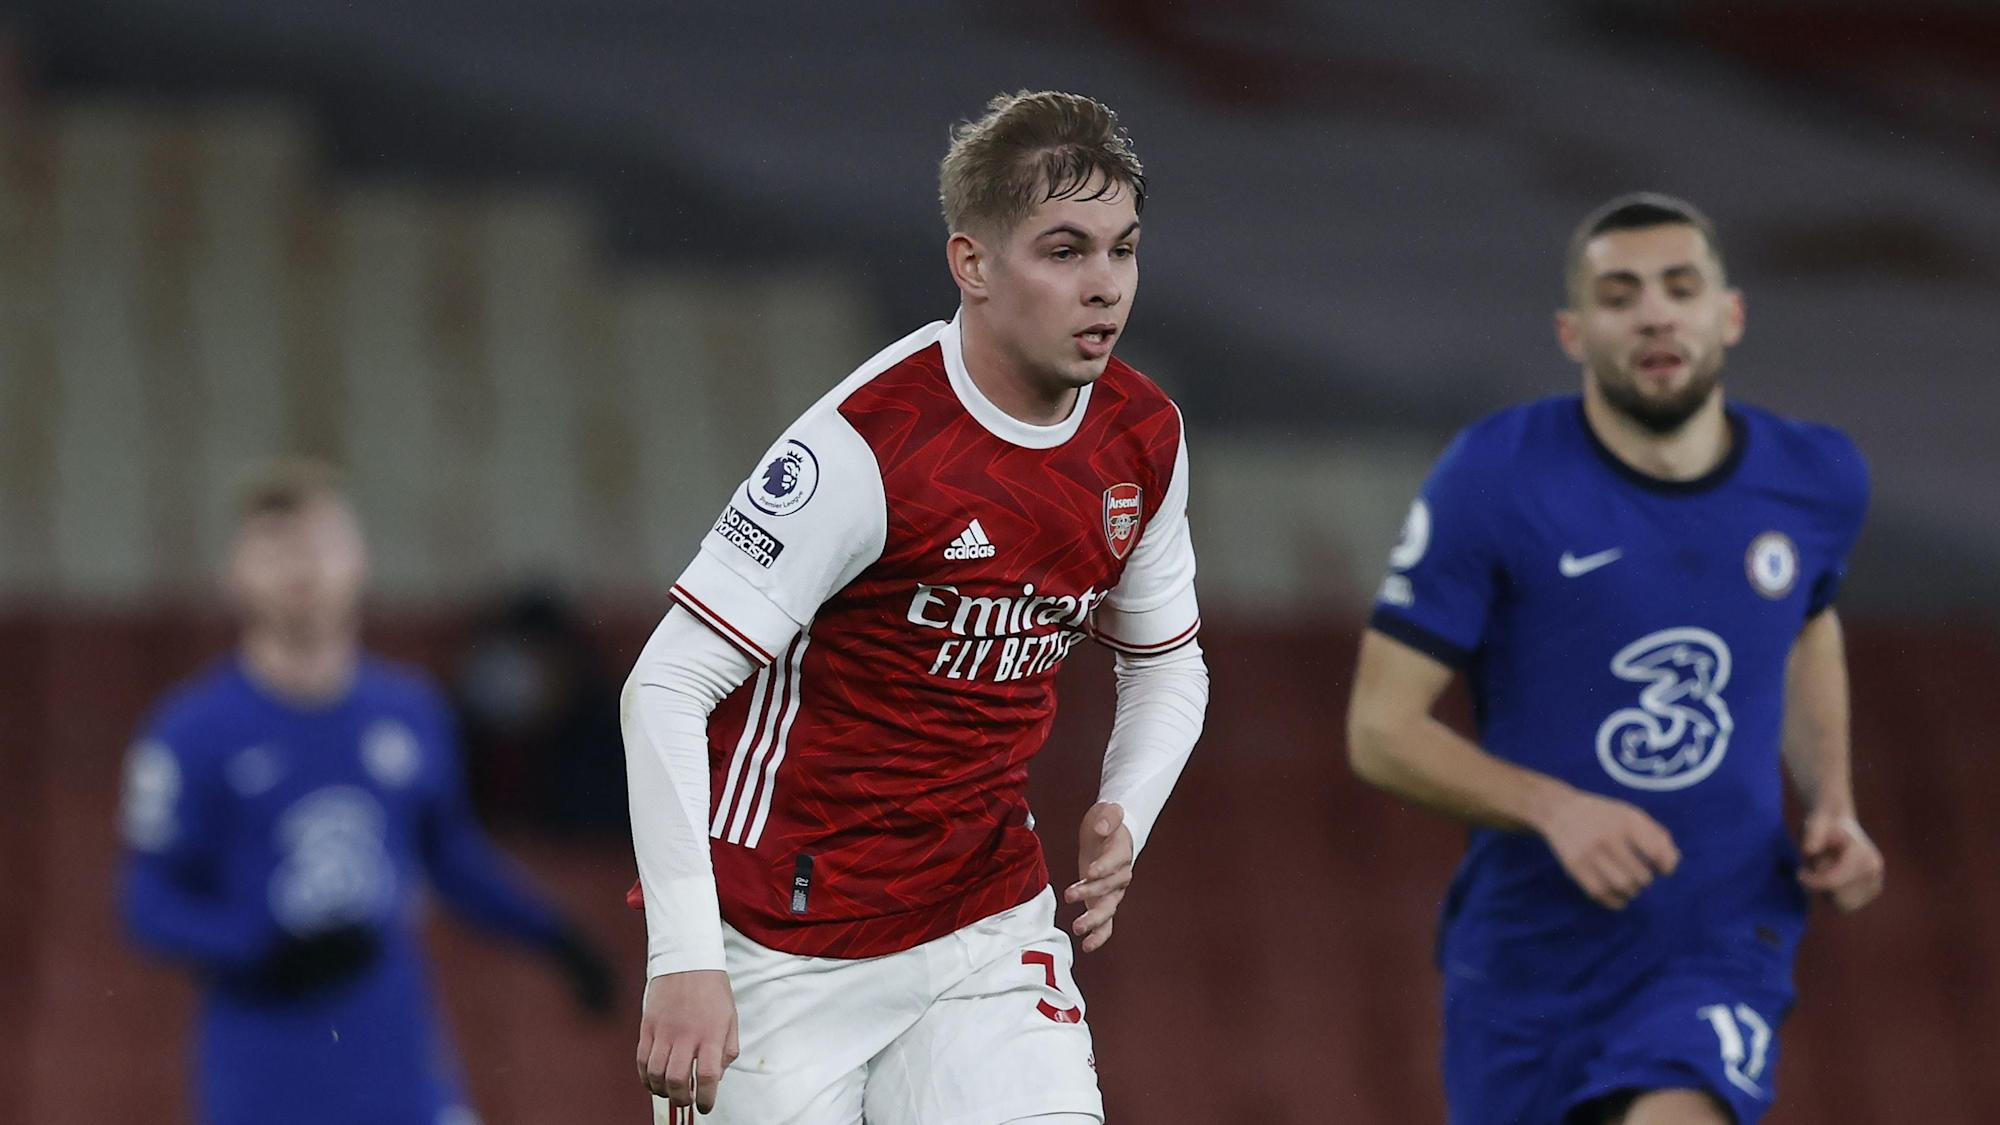 Mikel Arteta Arsenal Need A Player As Talented As Emile Smith Rowe